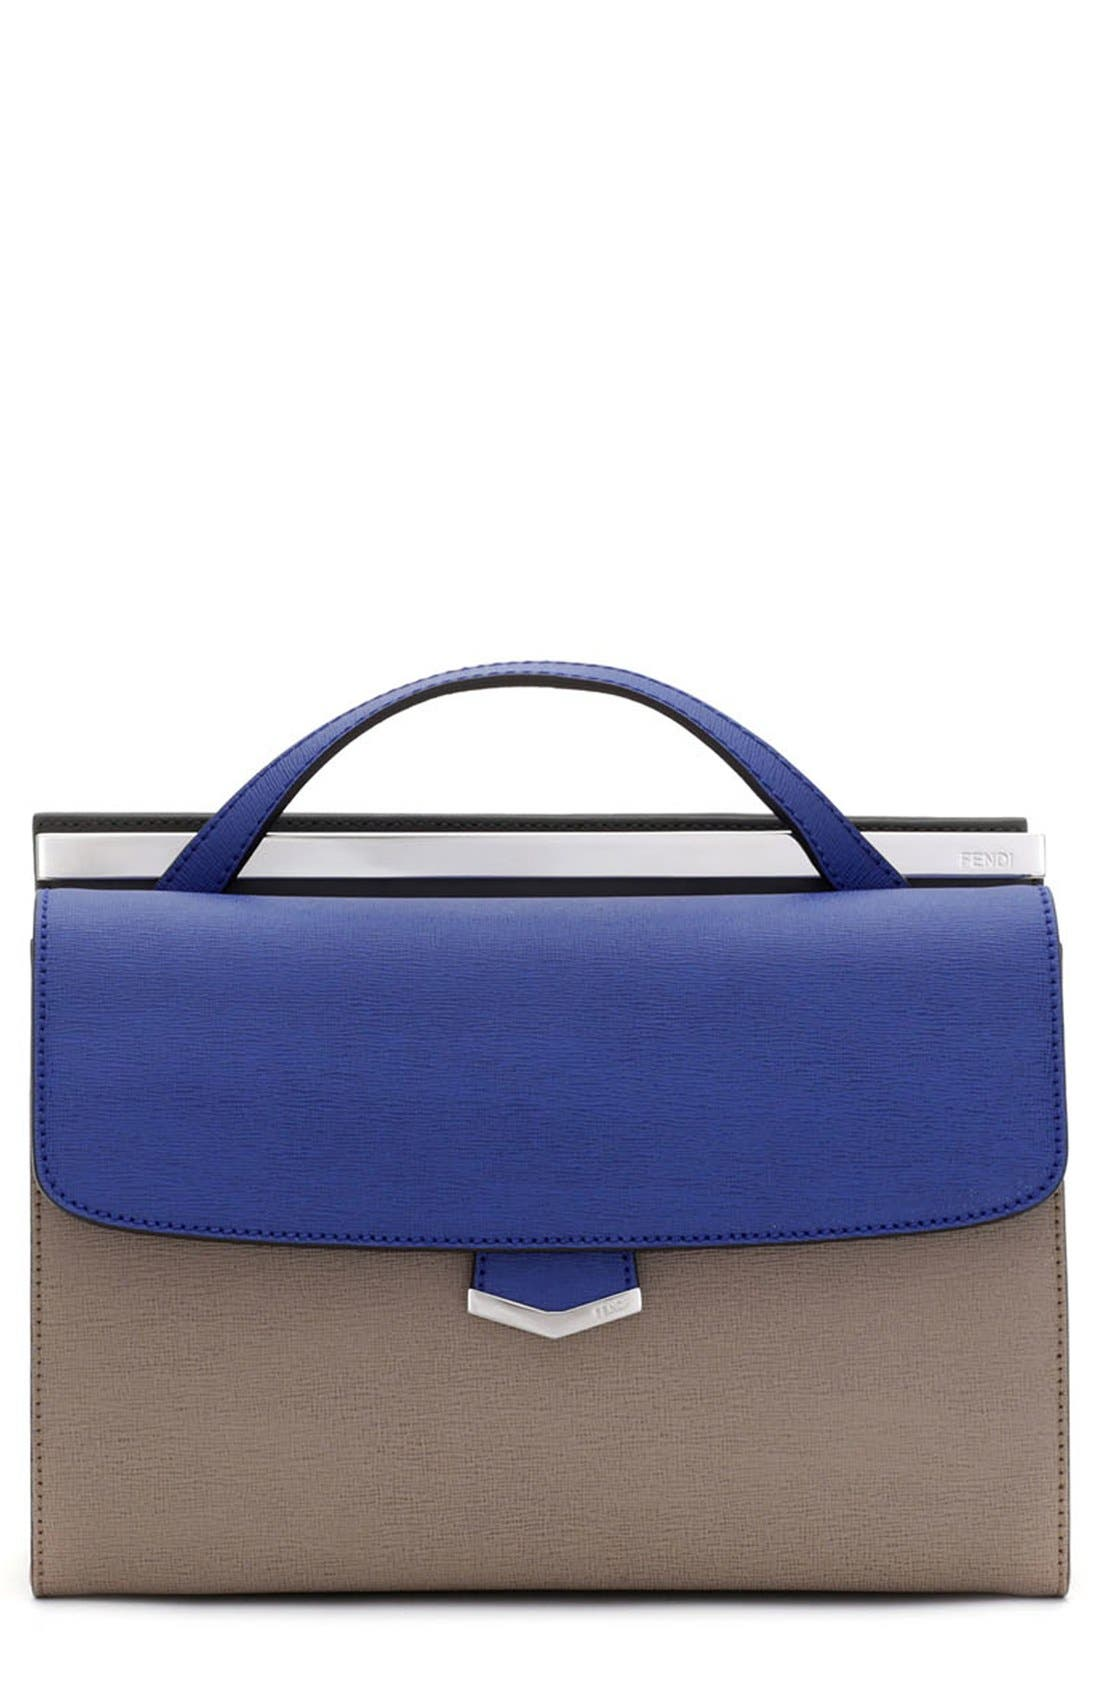 Alternate Image 1 Selected - Fendi 'Demi Jour' Colorblock Leather Satchel